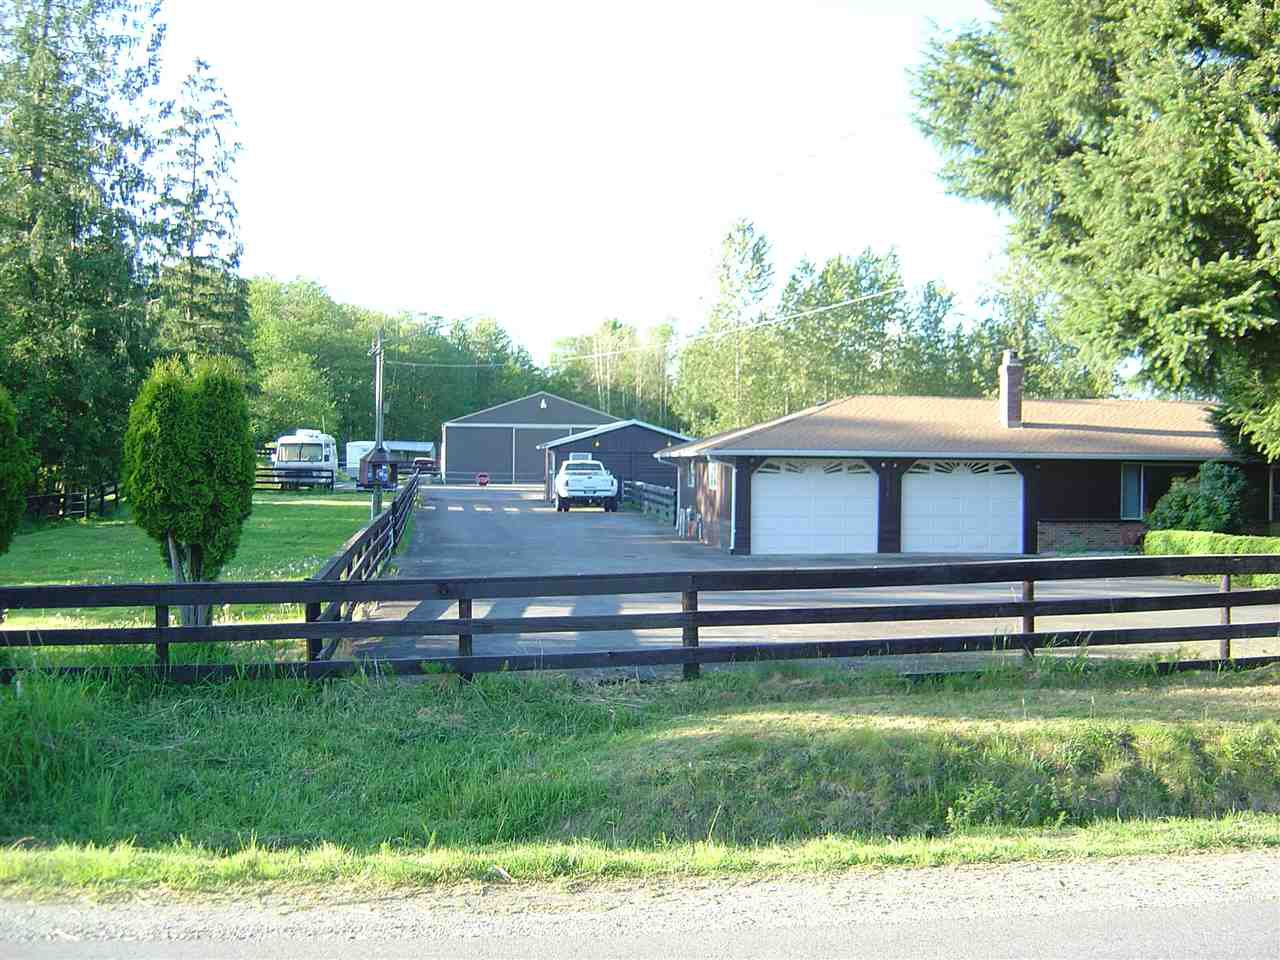 Main Photo: 26167 64 Avenue in Langley: County Line Glen Valley House for sale : MLS®# R2181114